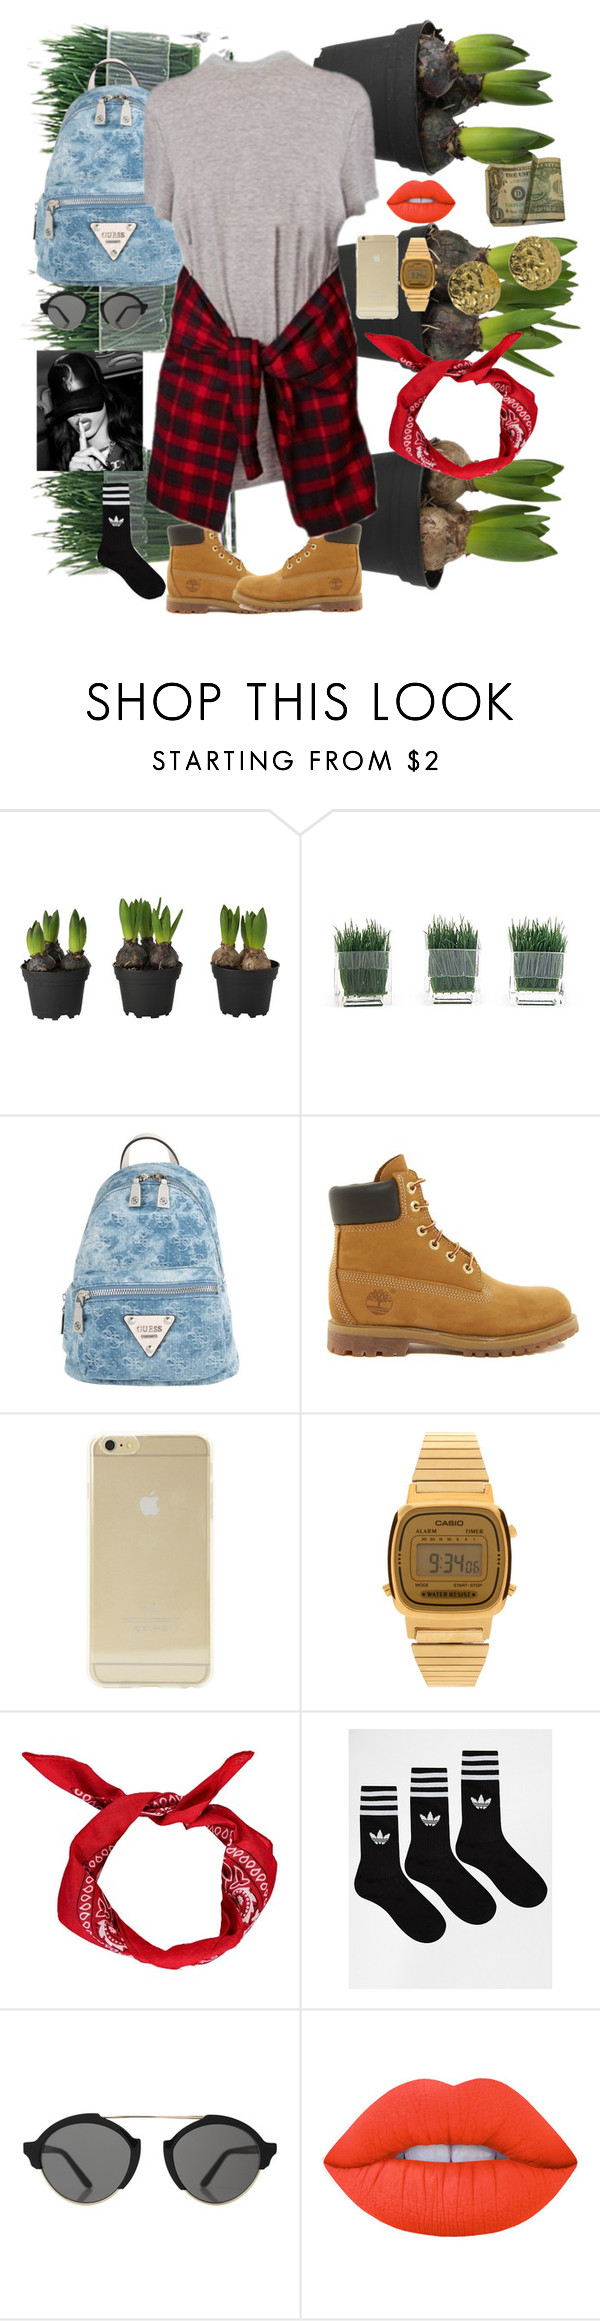 """""""Sin título #229"""" by viviana0 on Polyvore featuring moda, GUESS, Timberland, Sonix, Casio, Boohoo, adidas, Illesteva, Lime Crime y Chanel"""